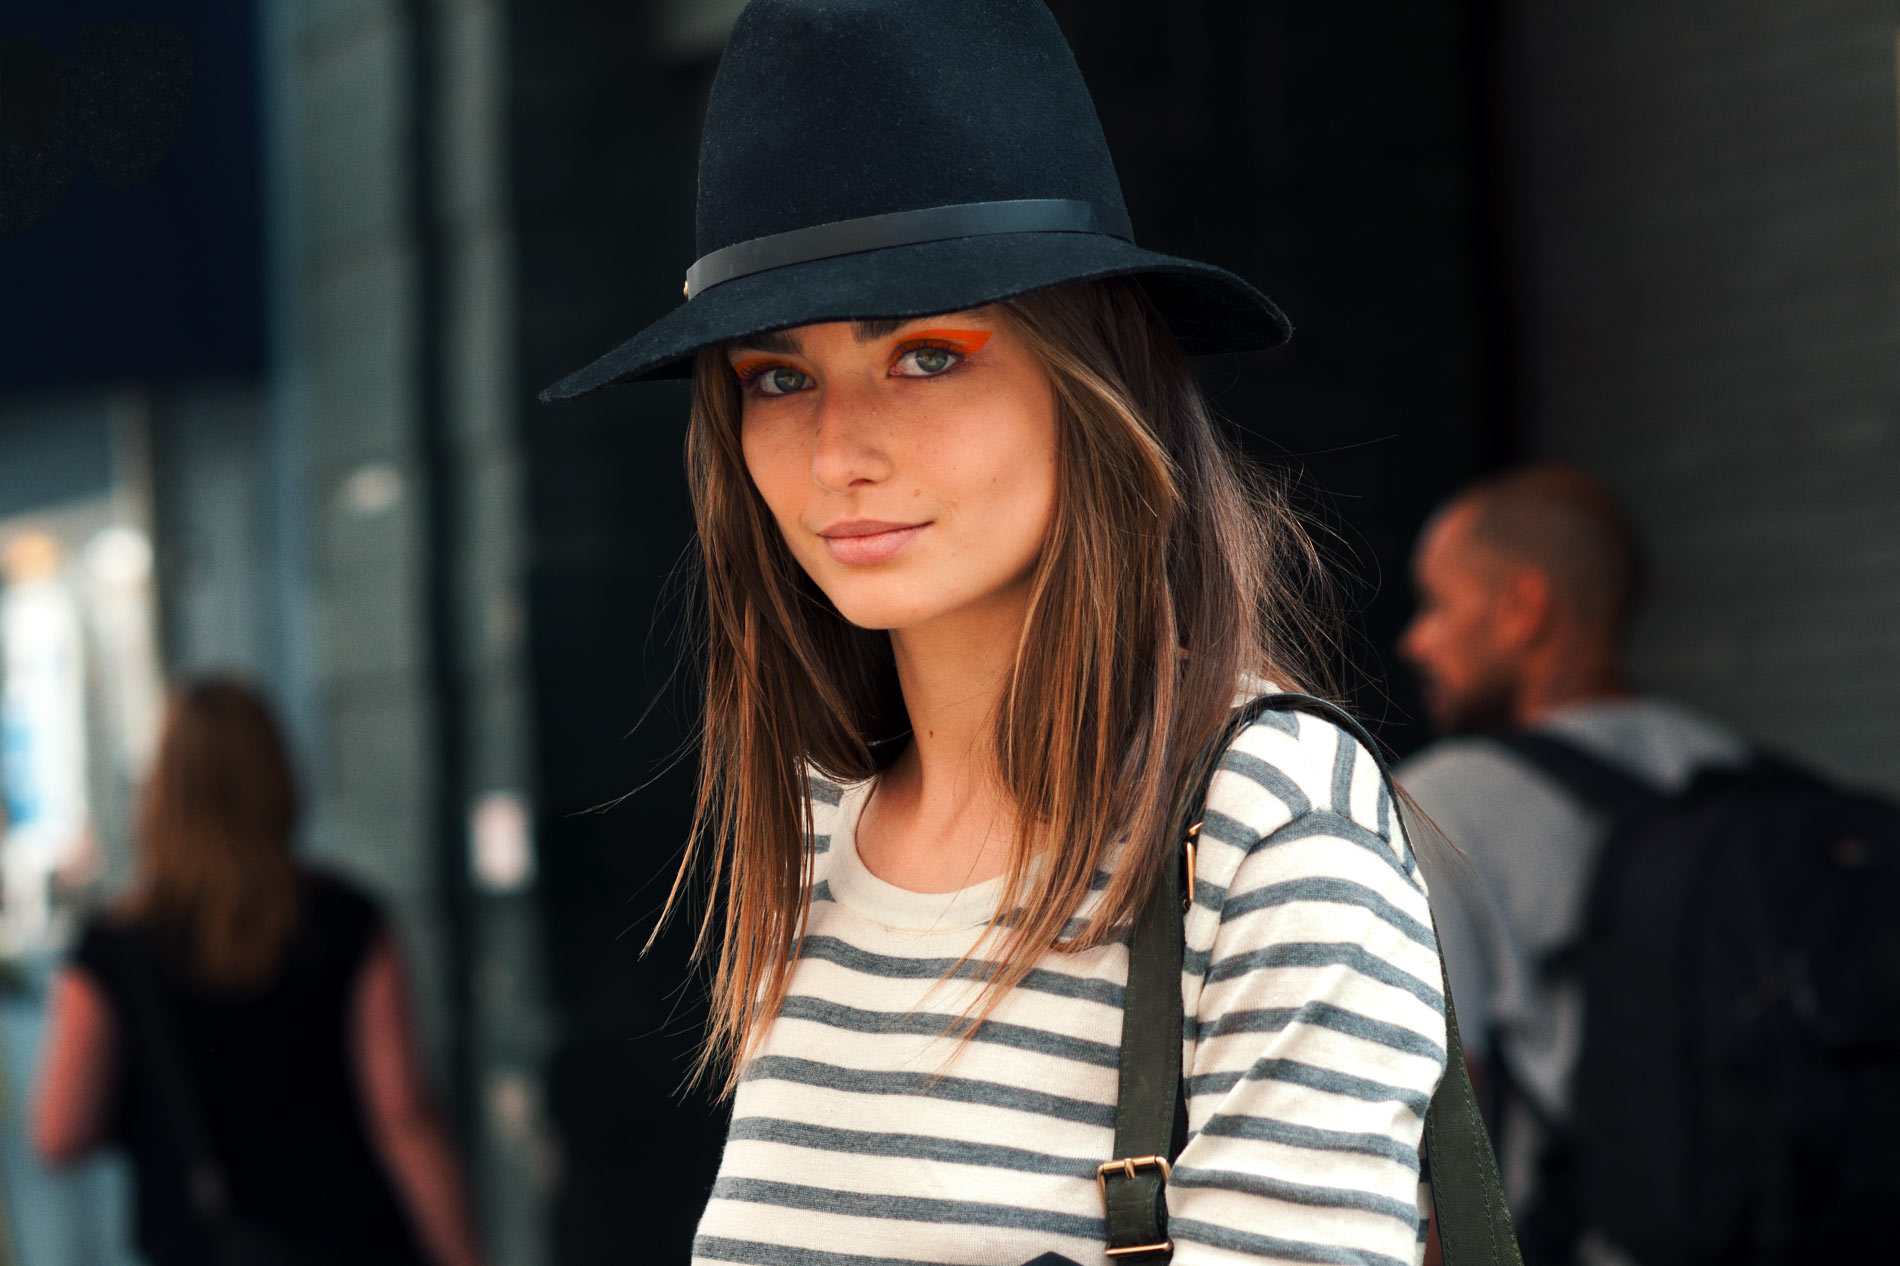 Andreea Diaconu at New York Fashion Week Spring/Summer 2013